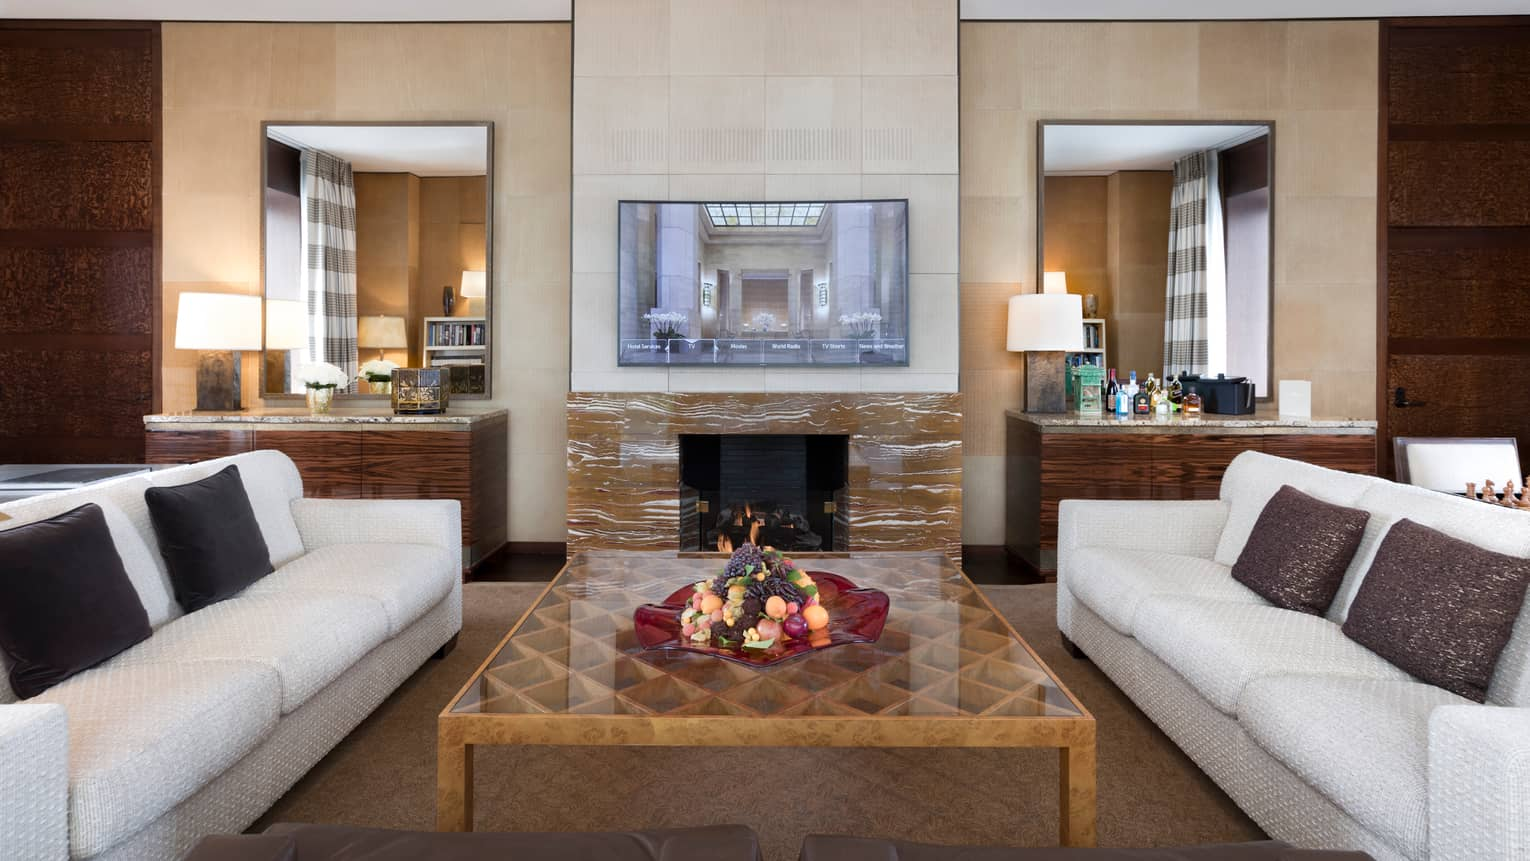 Presidential Suite white sofas around large table, wood-grain marble fireplace, TV on mantle